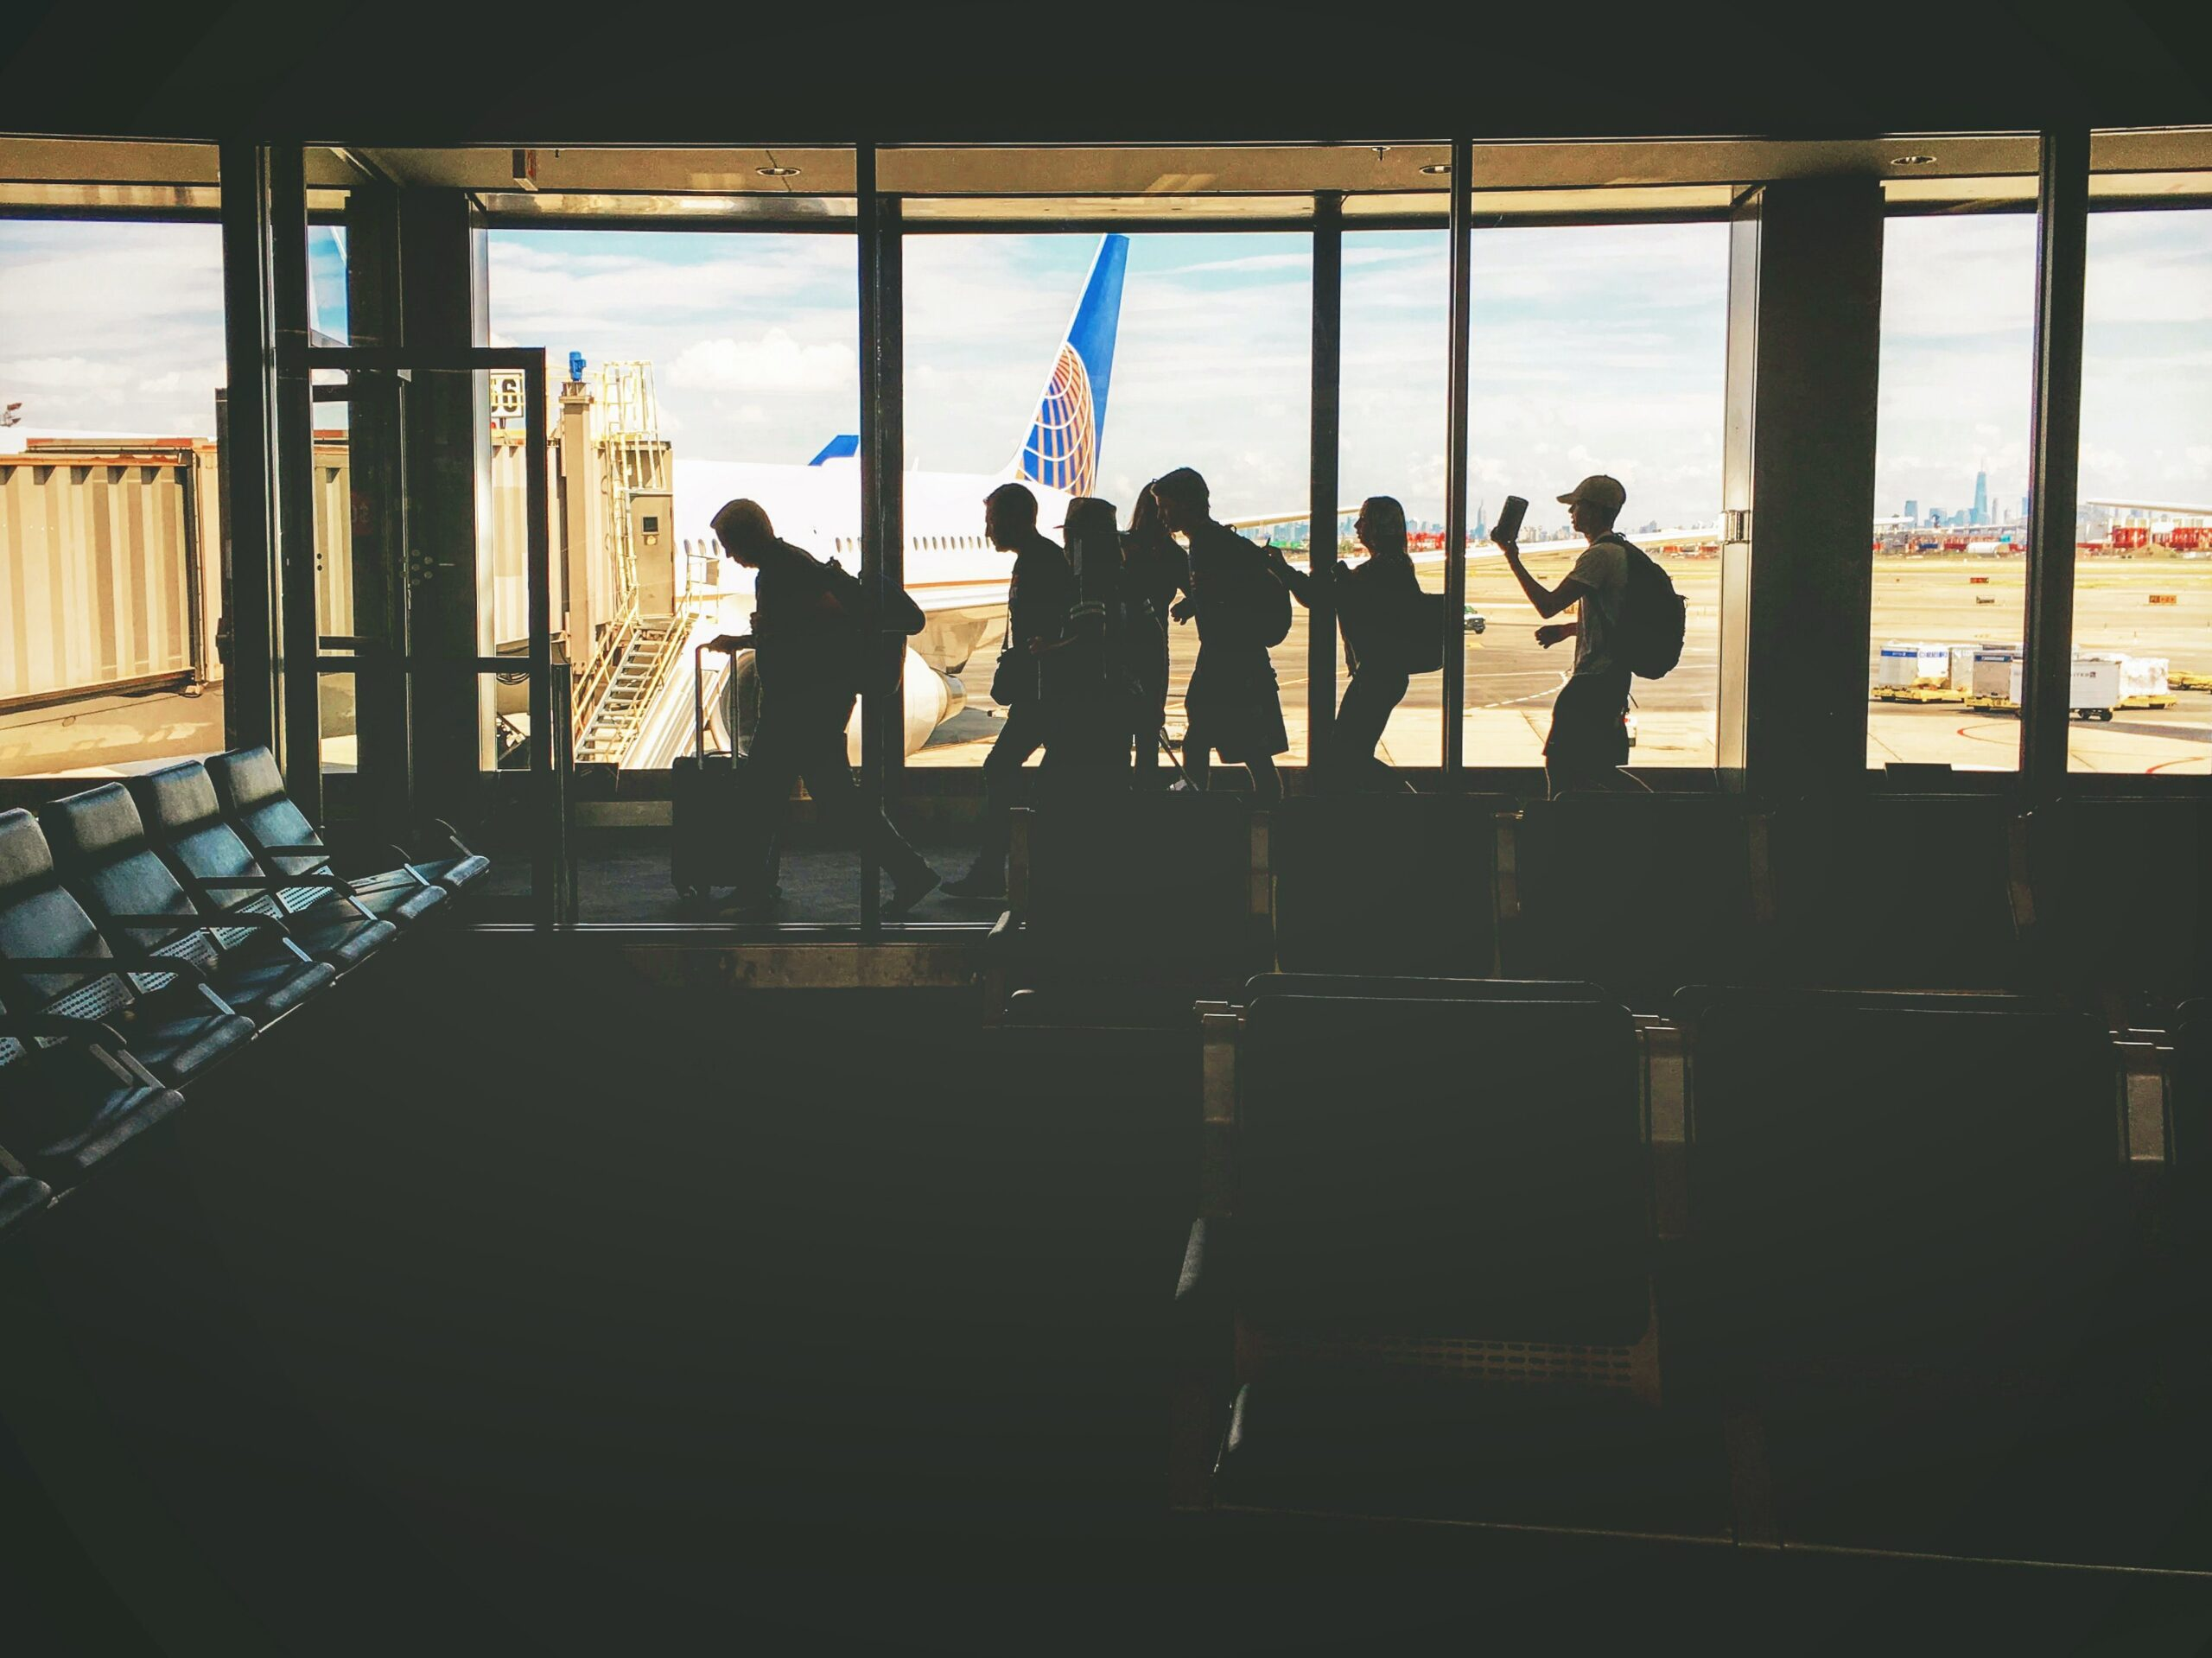 group-of-people-walking-near-clear-glass-window-with-a-view